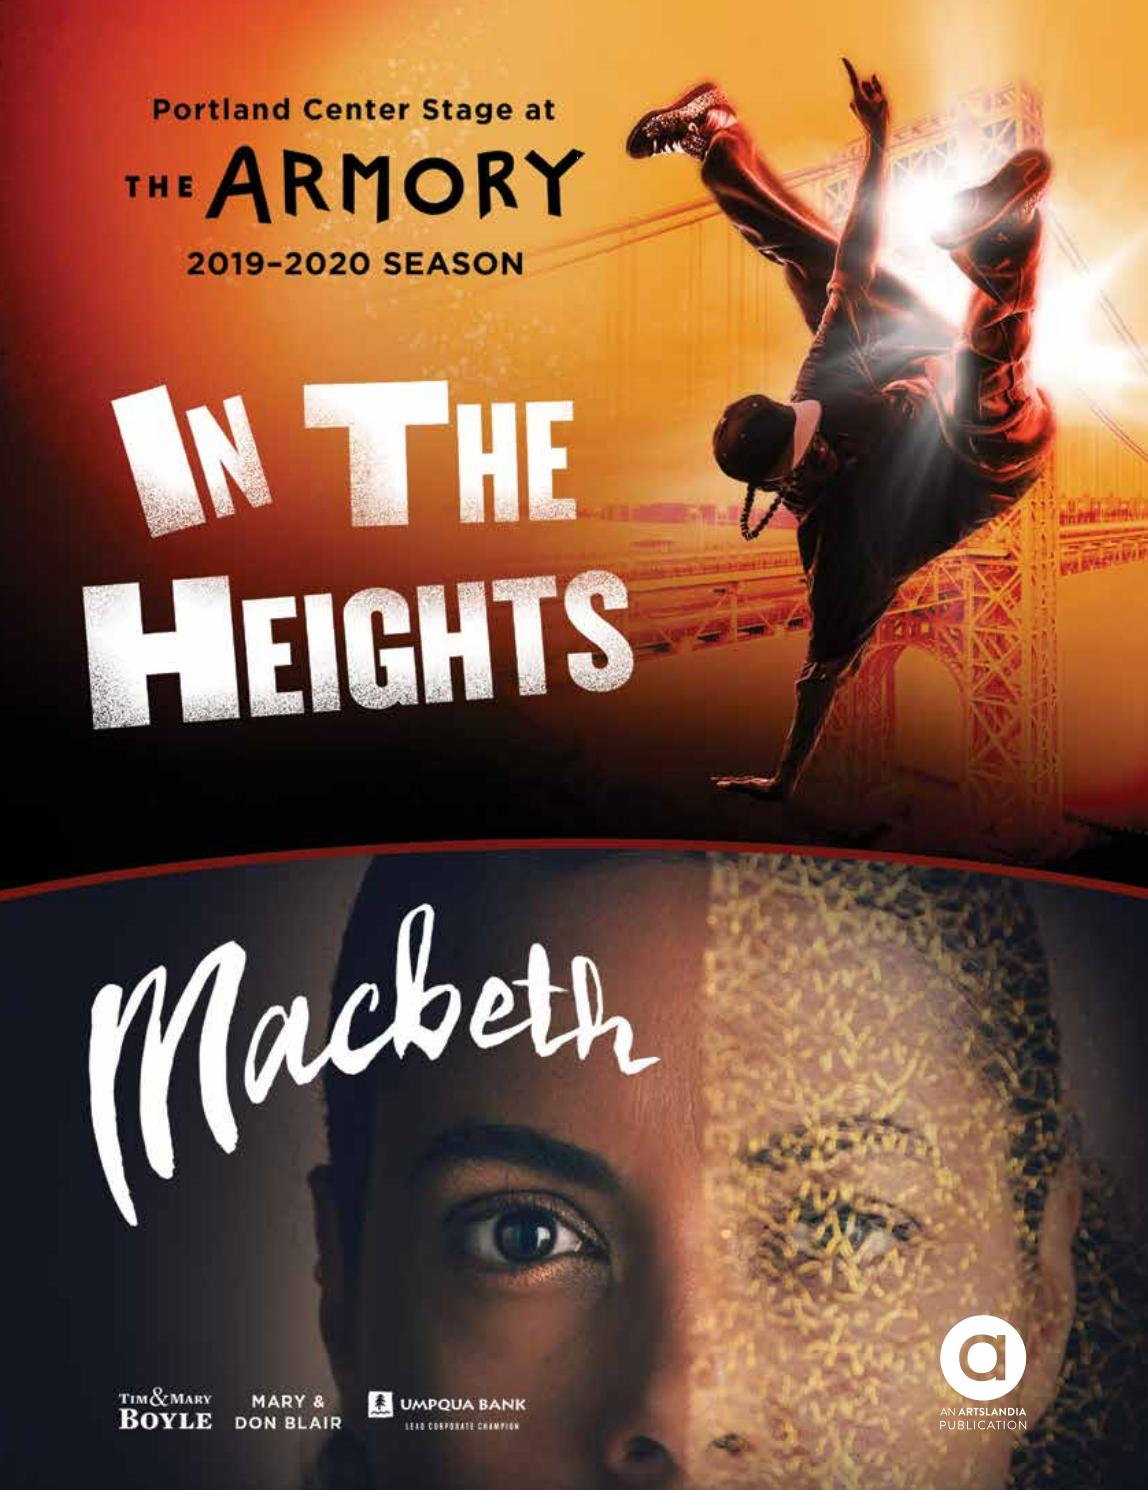 In The Heights Macbeth Portland Center Stage At The Armory By Artslandia Issuu